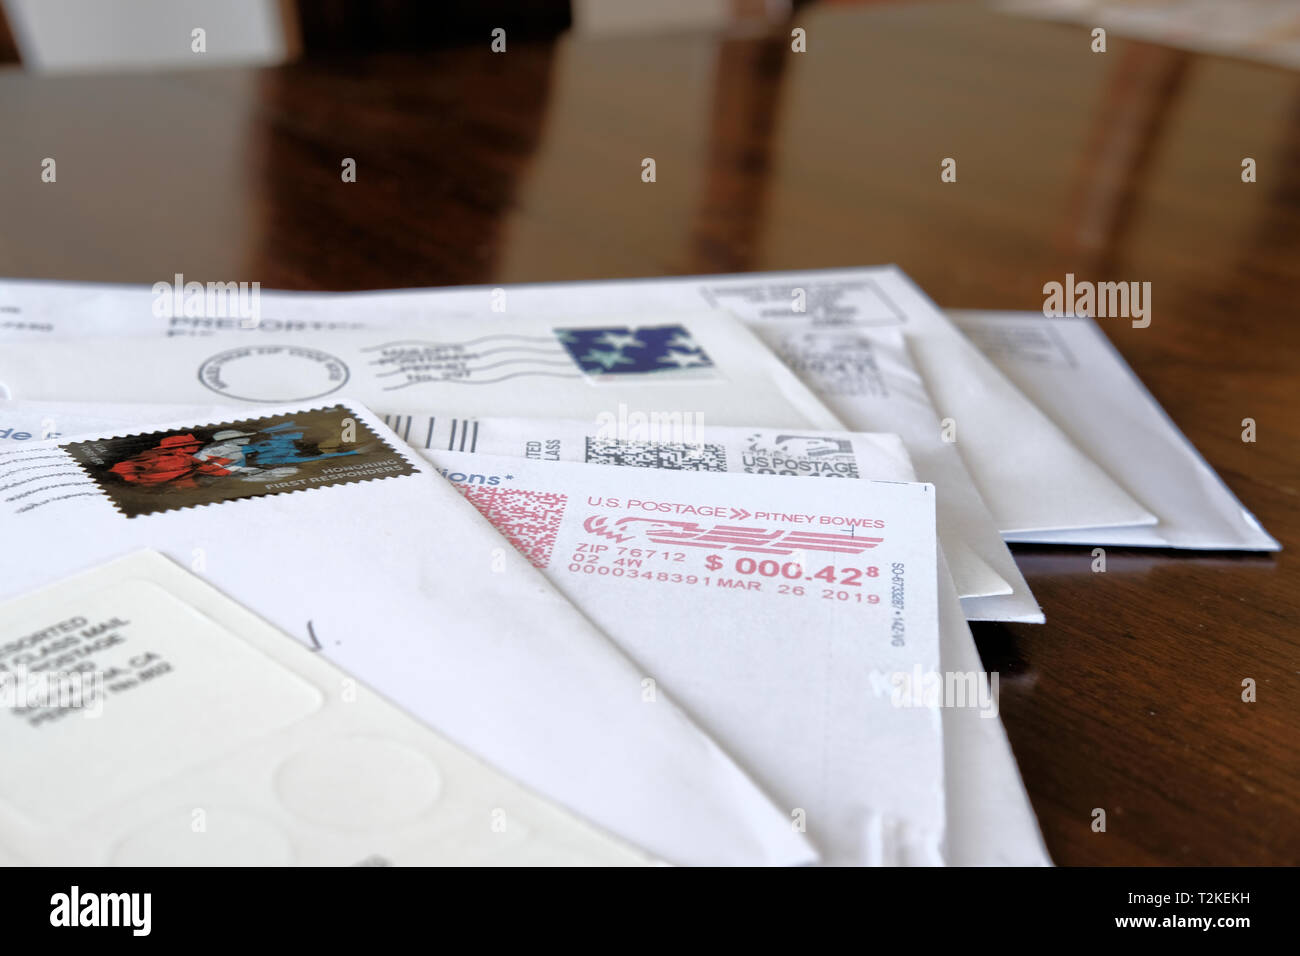 Assorted envelopes and letters with canceled United States Postal Service postage on a wooden table top. - Stock Image